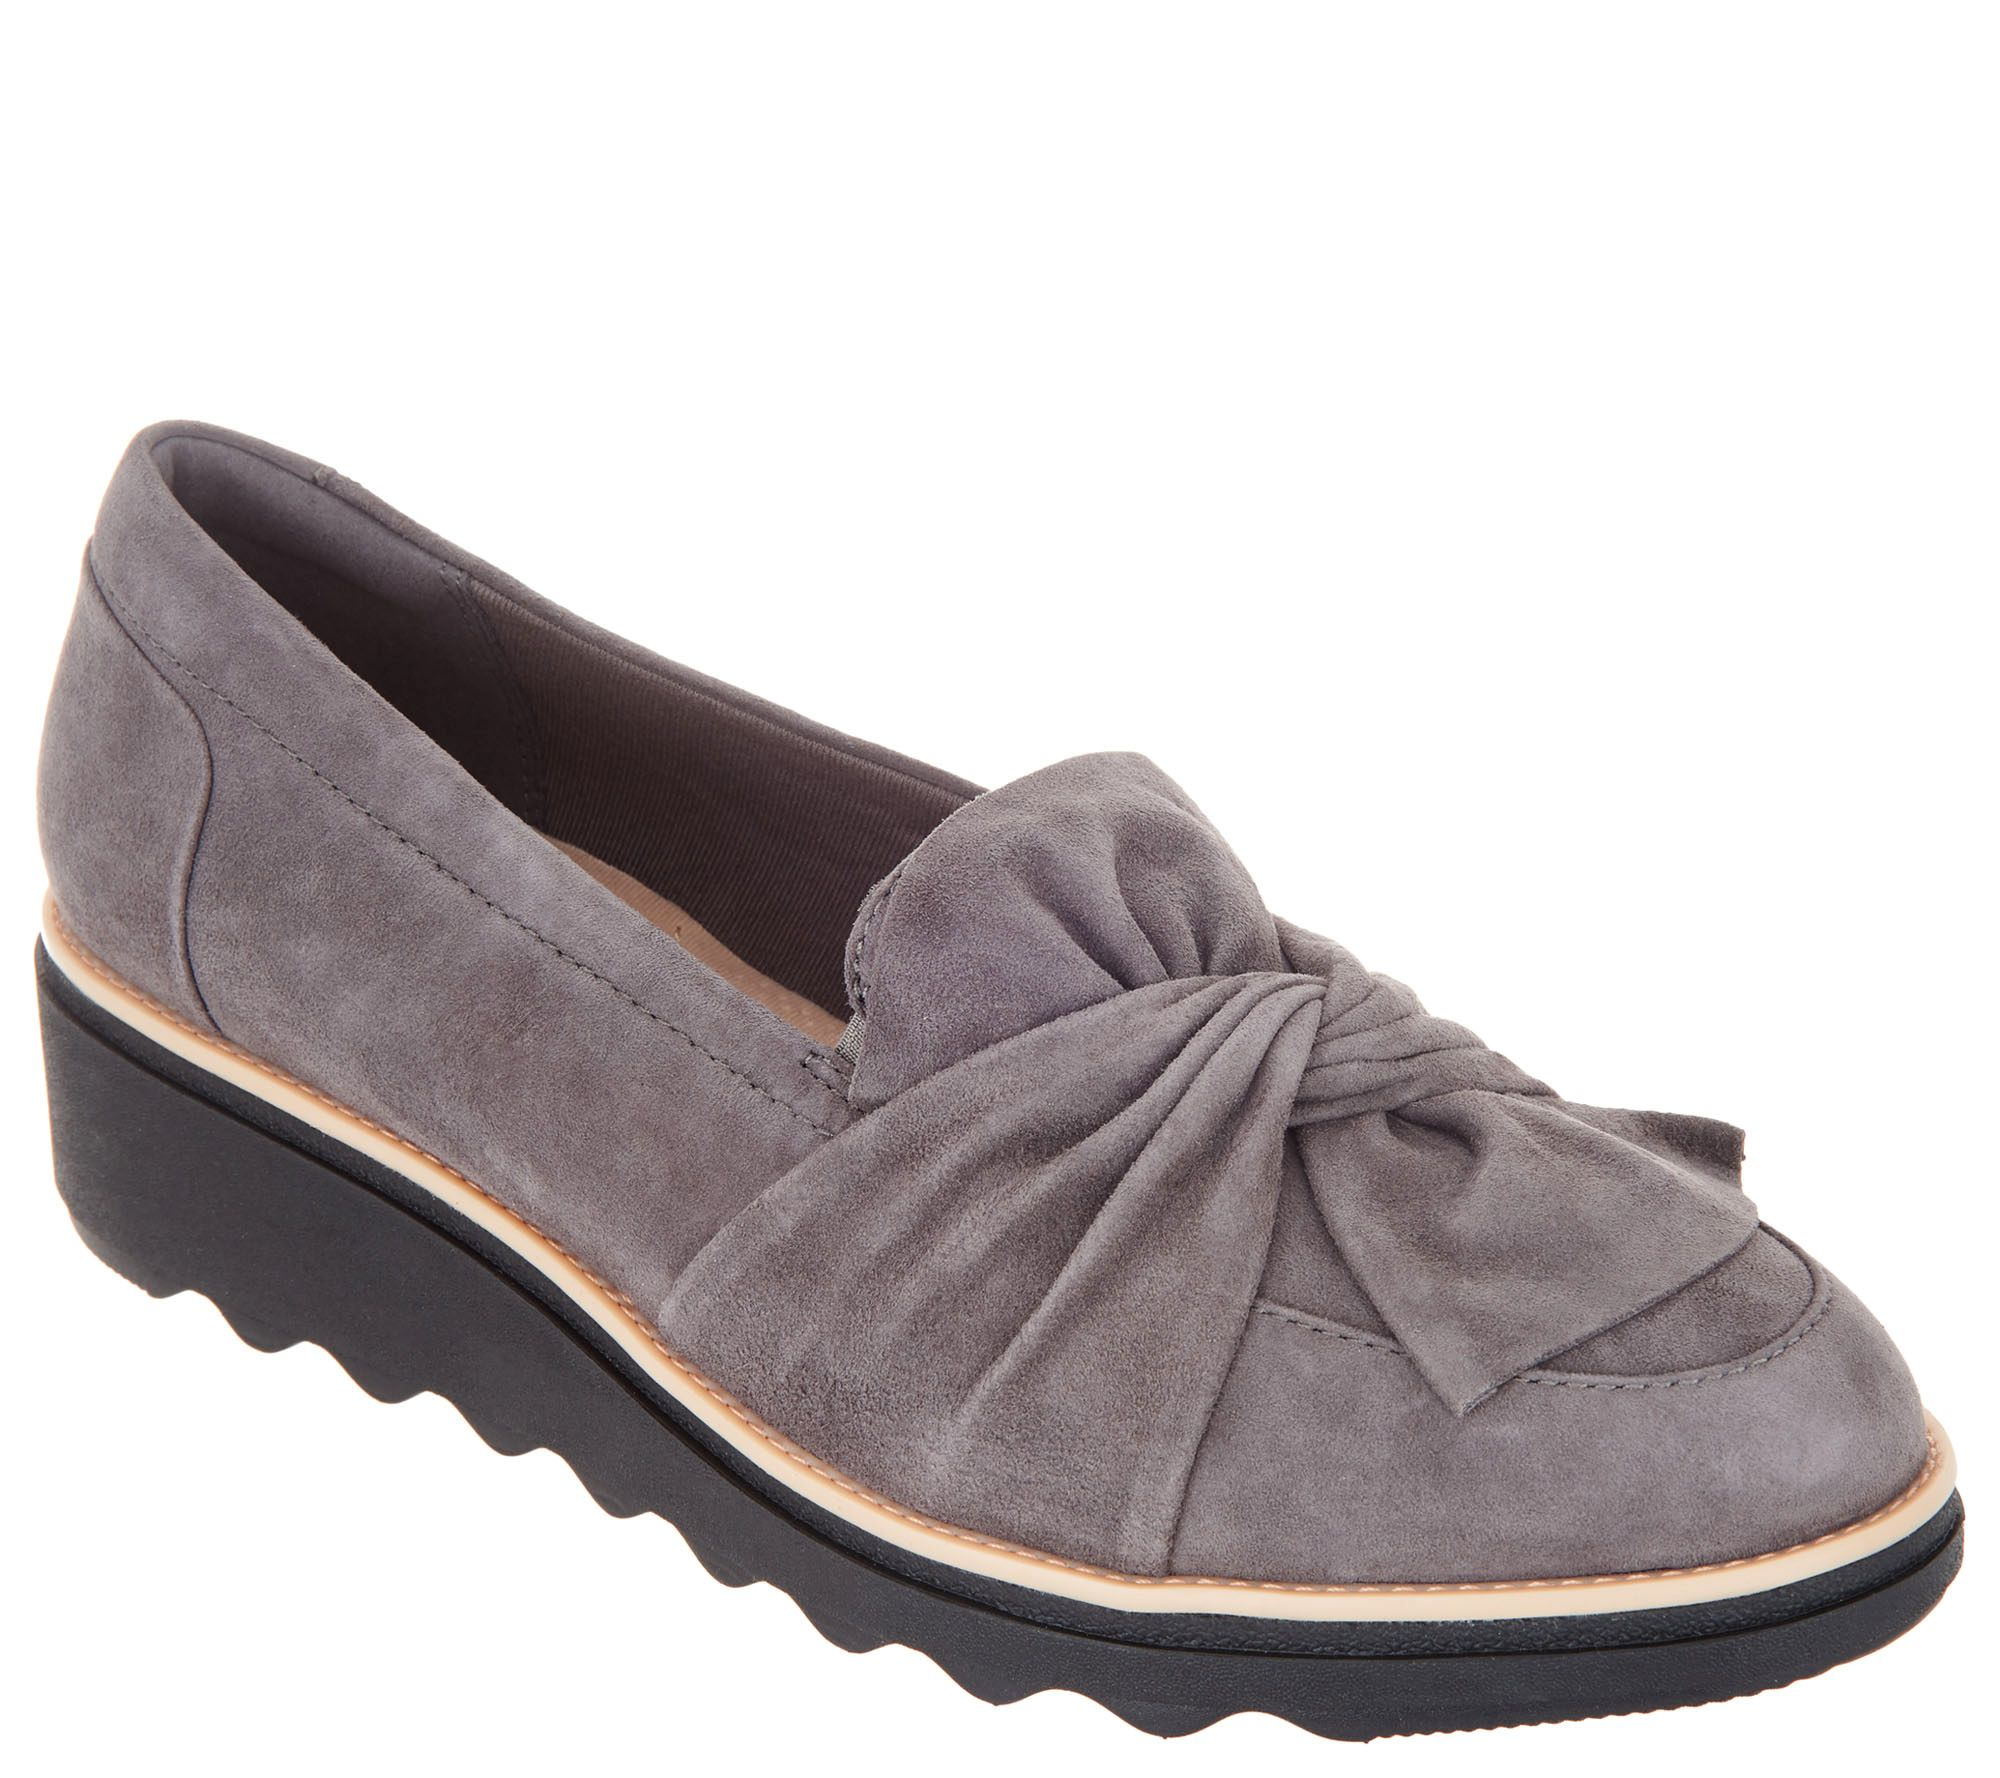 795c947fa01 Clarks Suede Slip-On Loafer with Knotted Detail - Sharon Dasher - Page 1 —  QVC.com